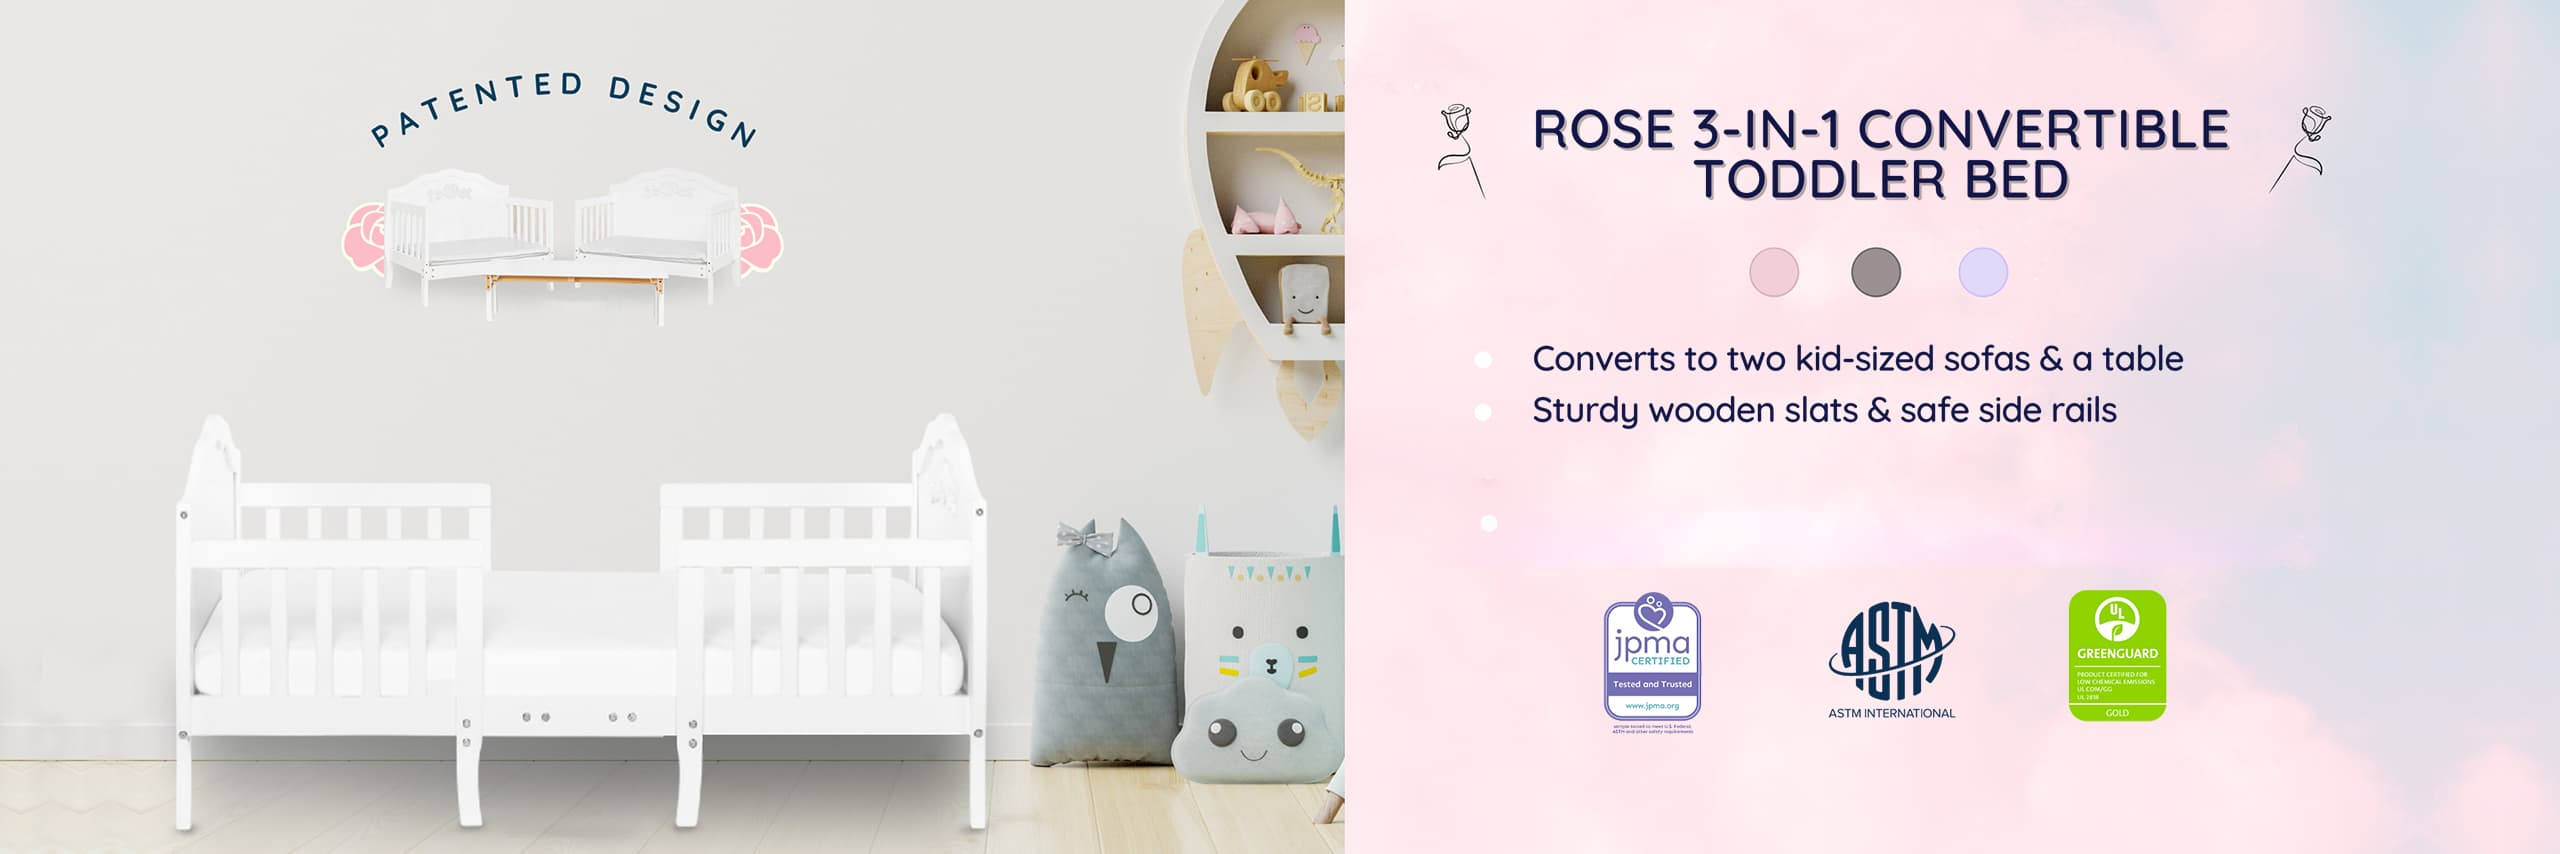 Rose 3-in-1 Convertible Toddler Bed